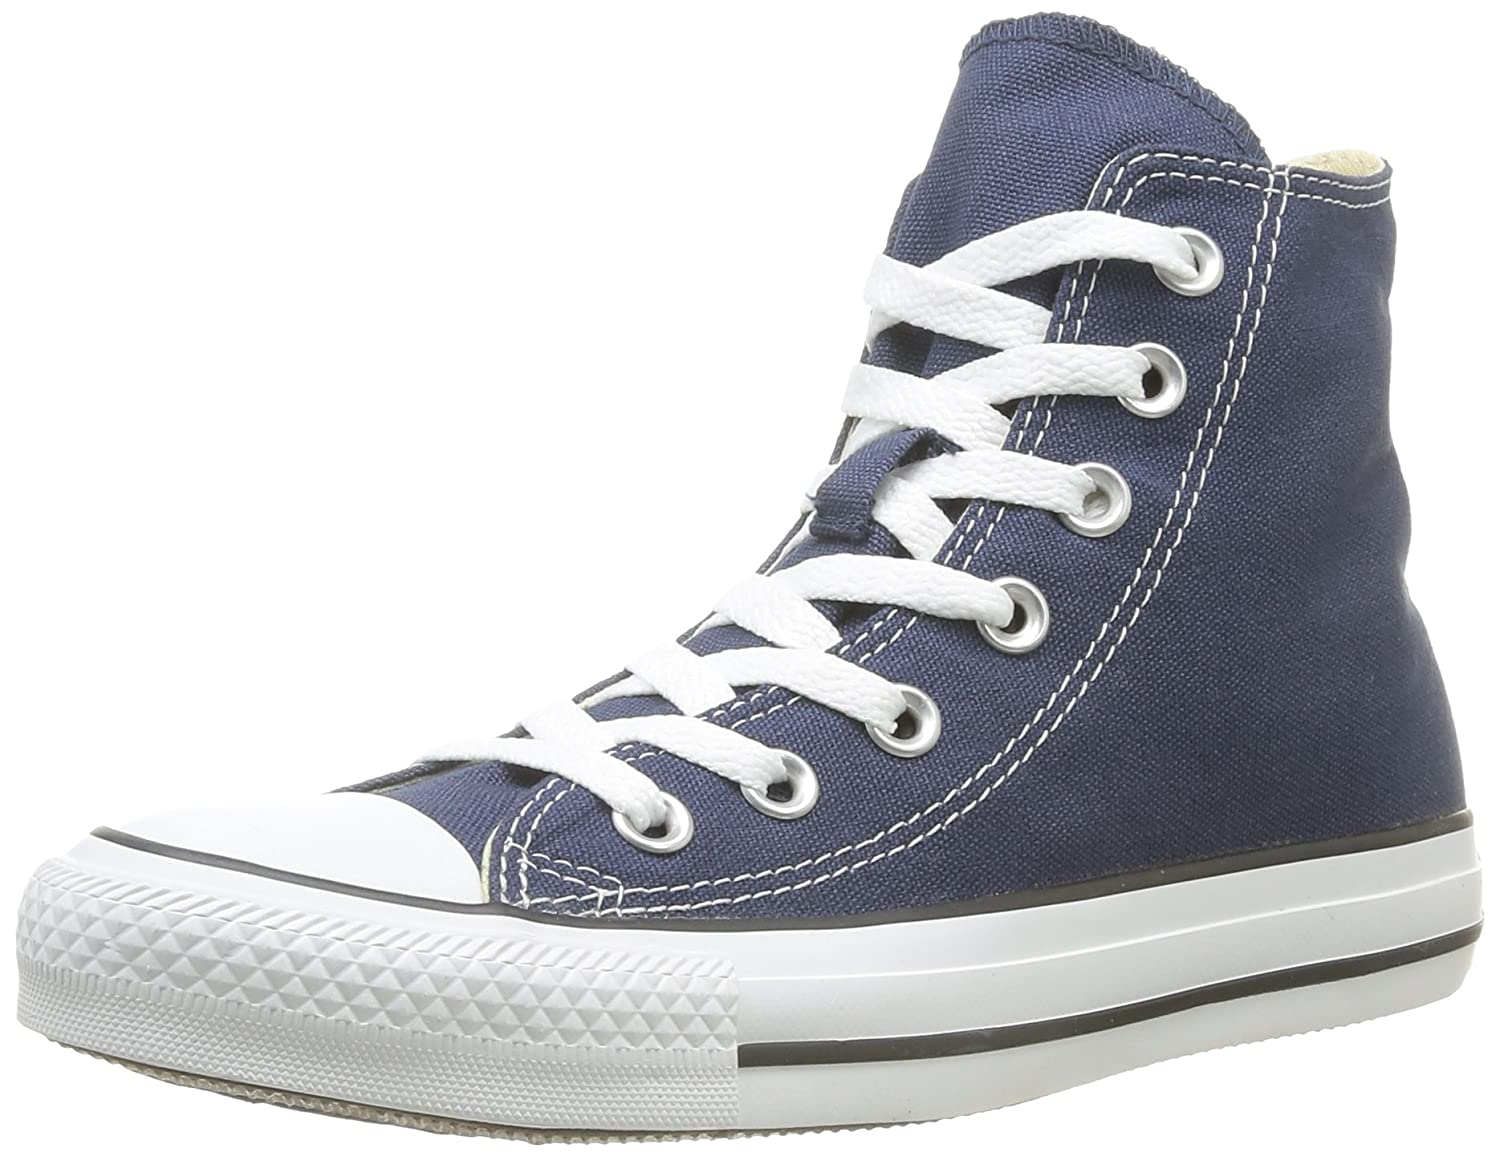 Converse Unisex Chuck Taylor All-Star High-Top Casual Sneakers in Classic Style and Color and Durable Canvas Uppers B01FVR6BUE 5.5 B(M) US Women / 3.5 D(M) US Men|Navy